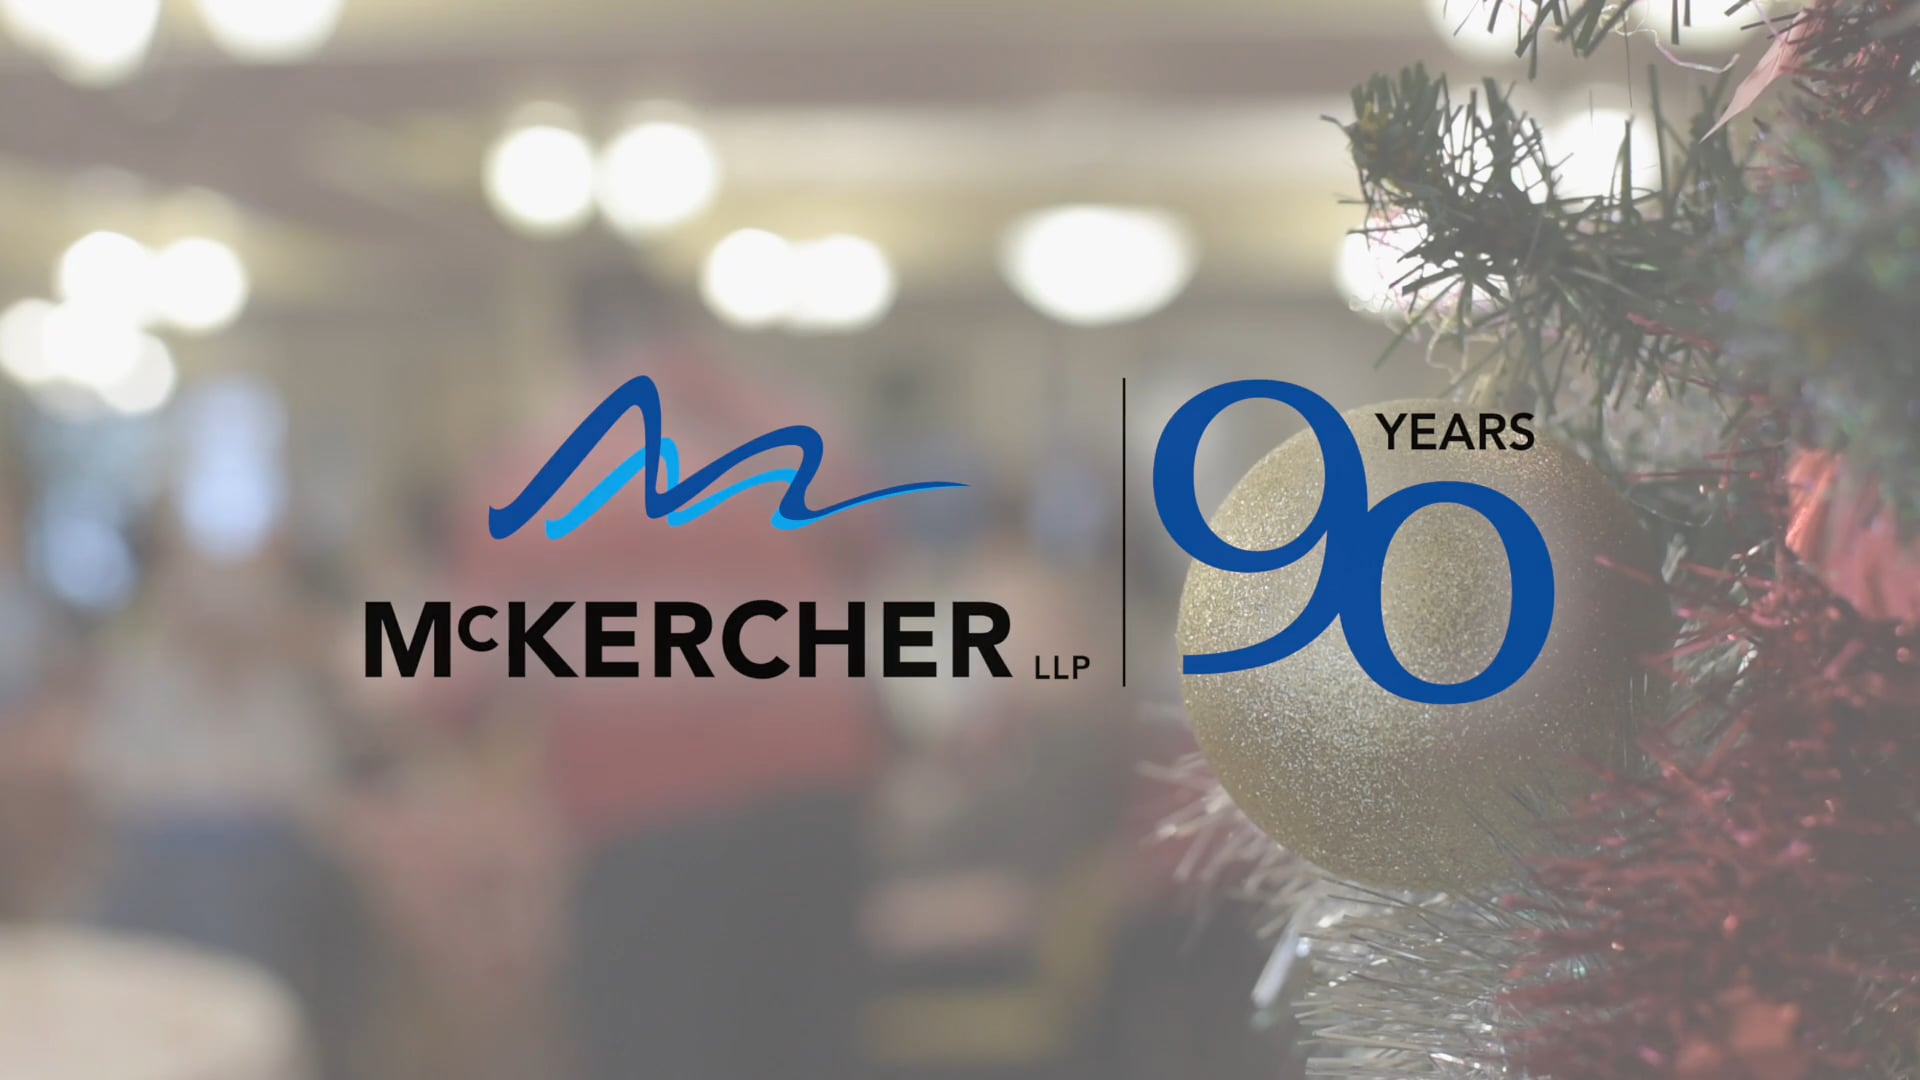 Video thumbnail for MCKERCHER LLP XMAS 2016